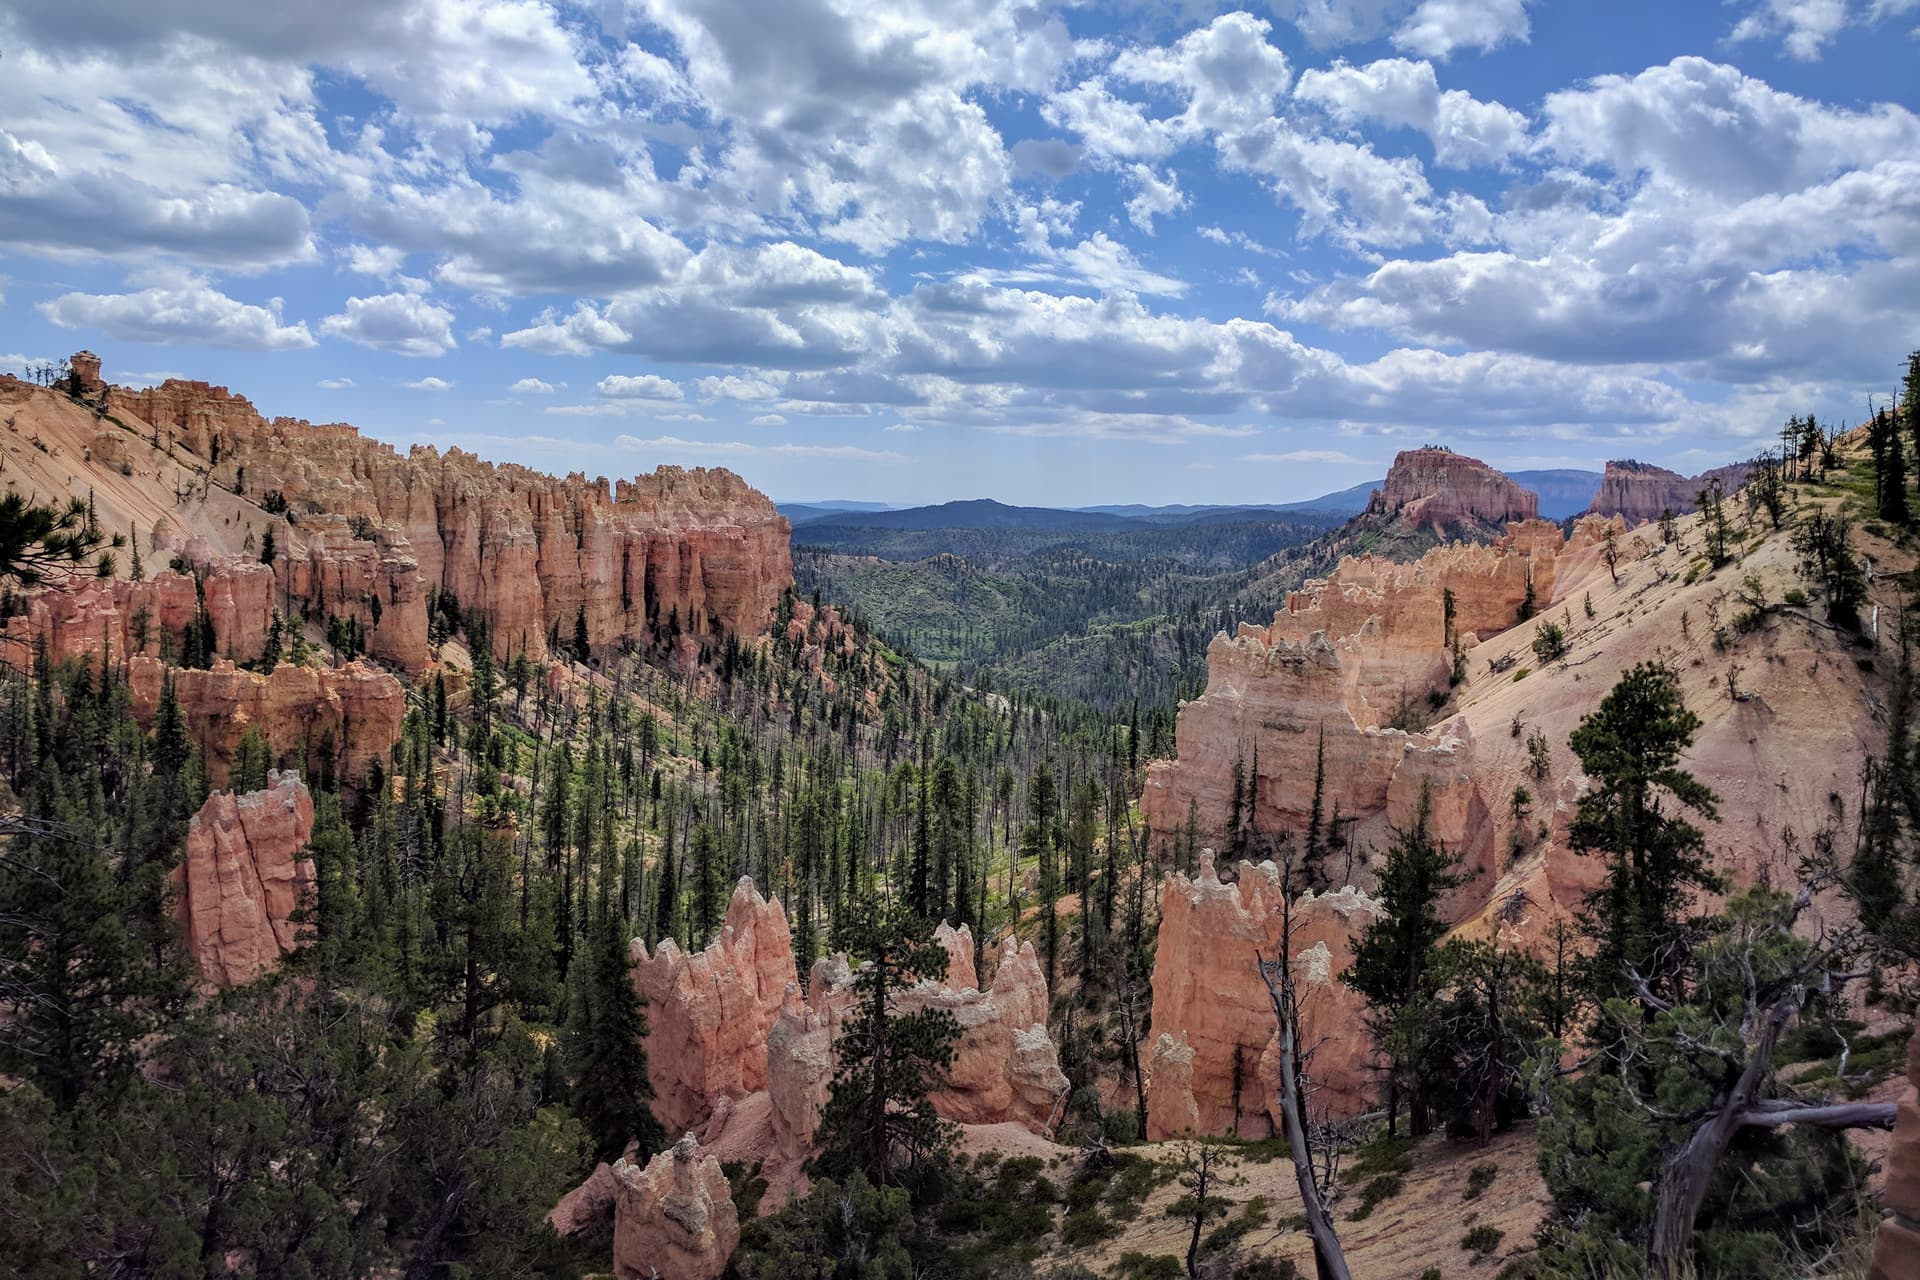 Looking down Swamp Canyon in Bryce Canyon National Park. The floor of the canyon is green with life, but the trees are all blackened and dead, killed by a fire the previous year.